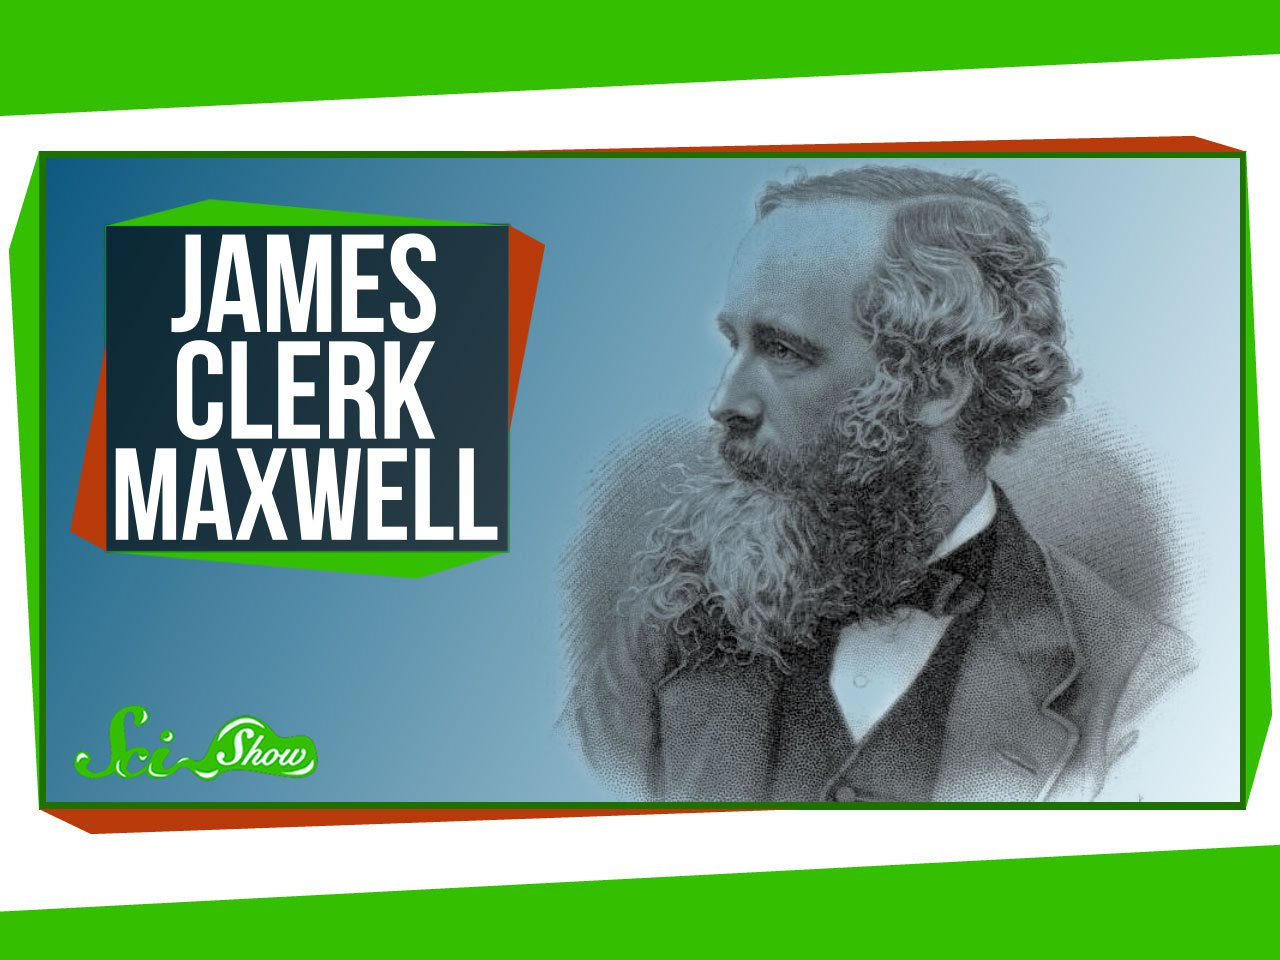 Happy birthday to James Clerk Maxwell, one of the greatest physicists who ever lived!